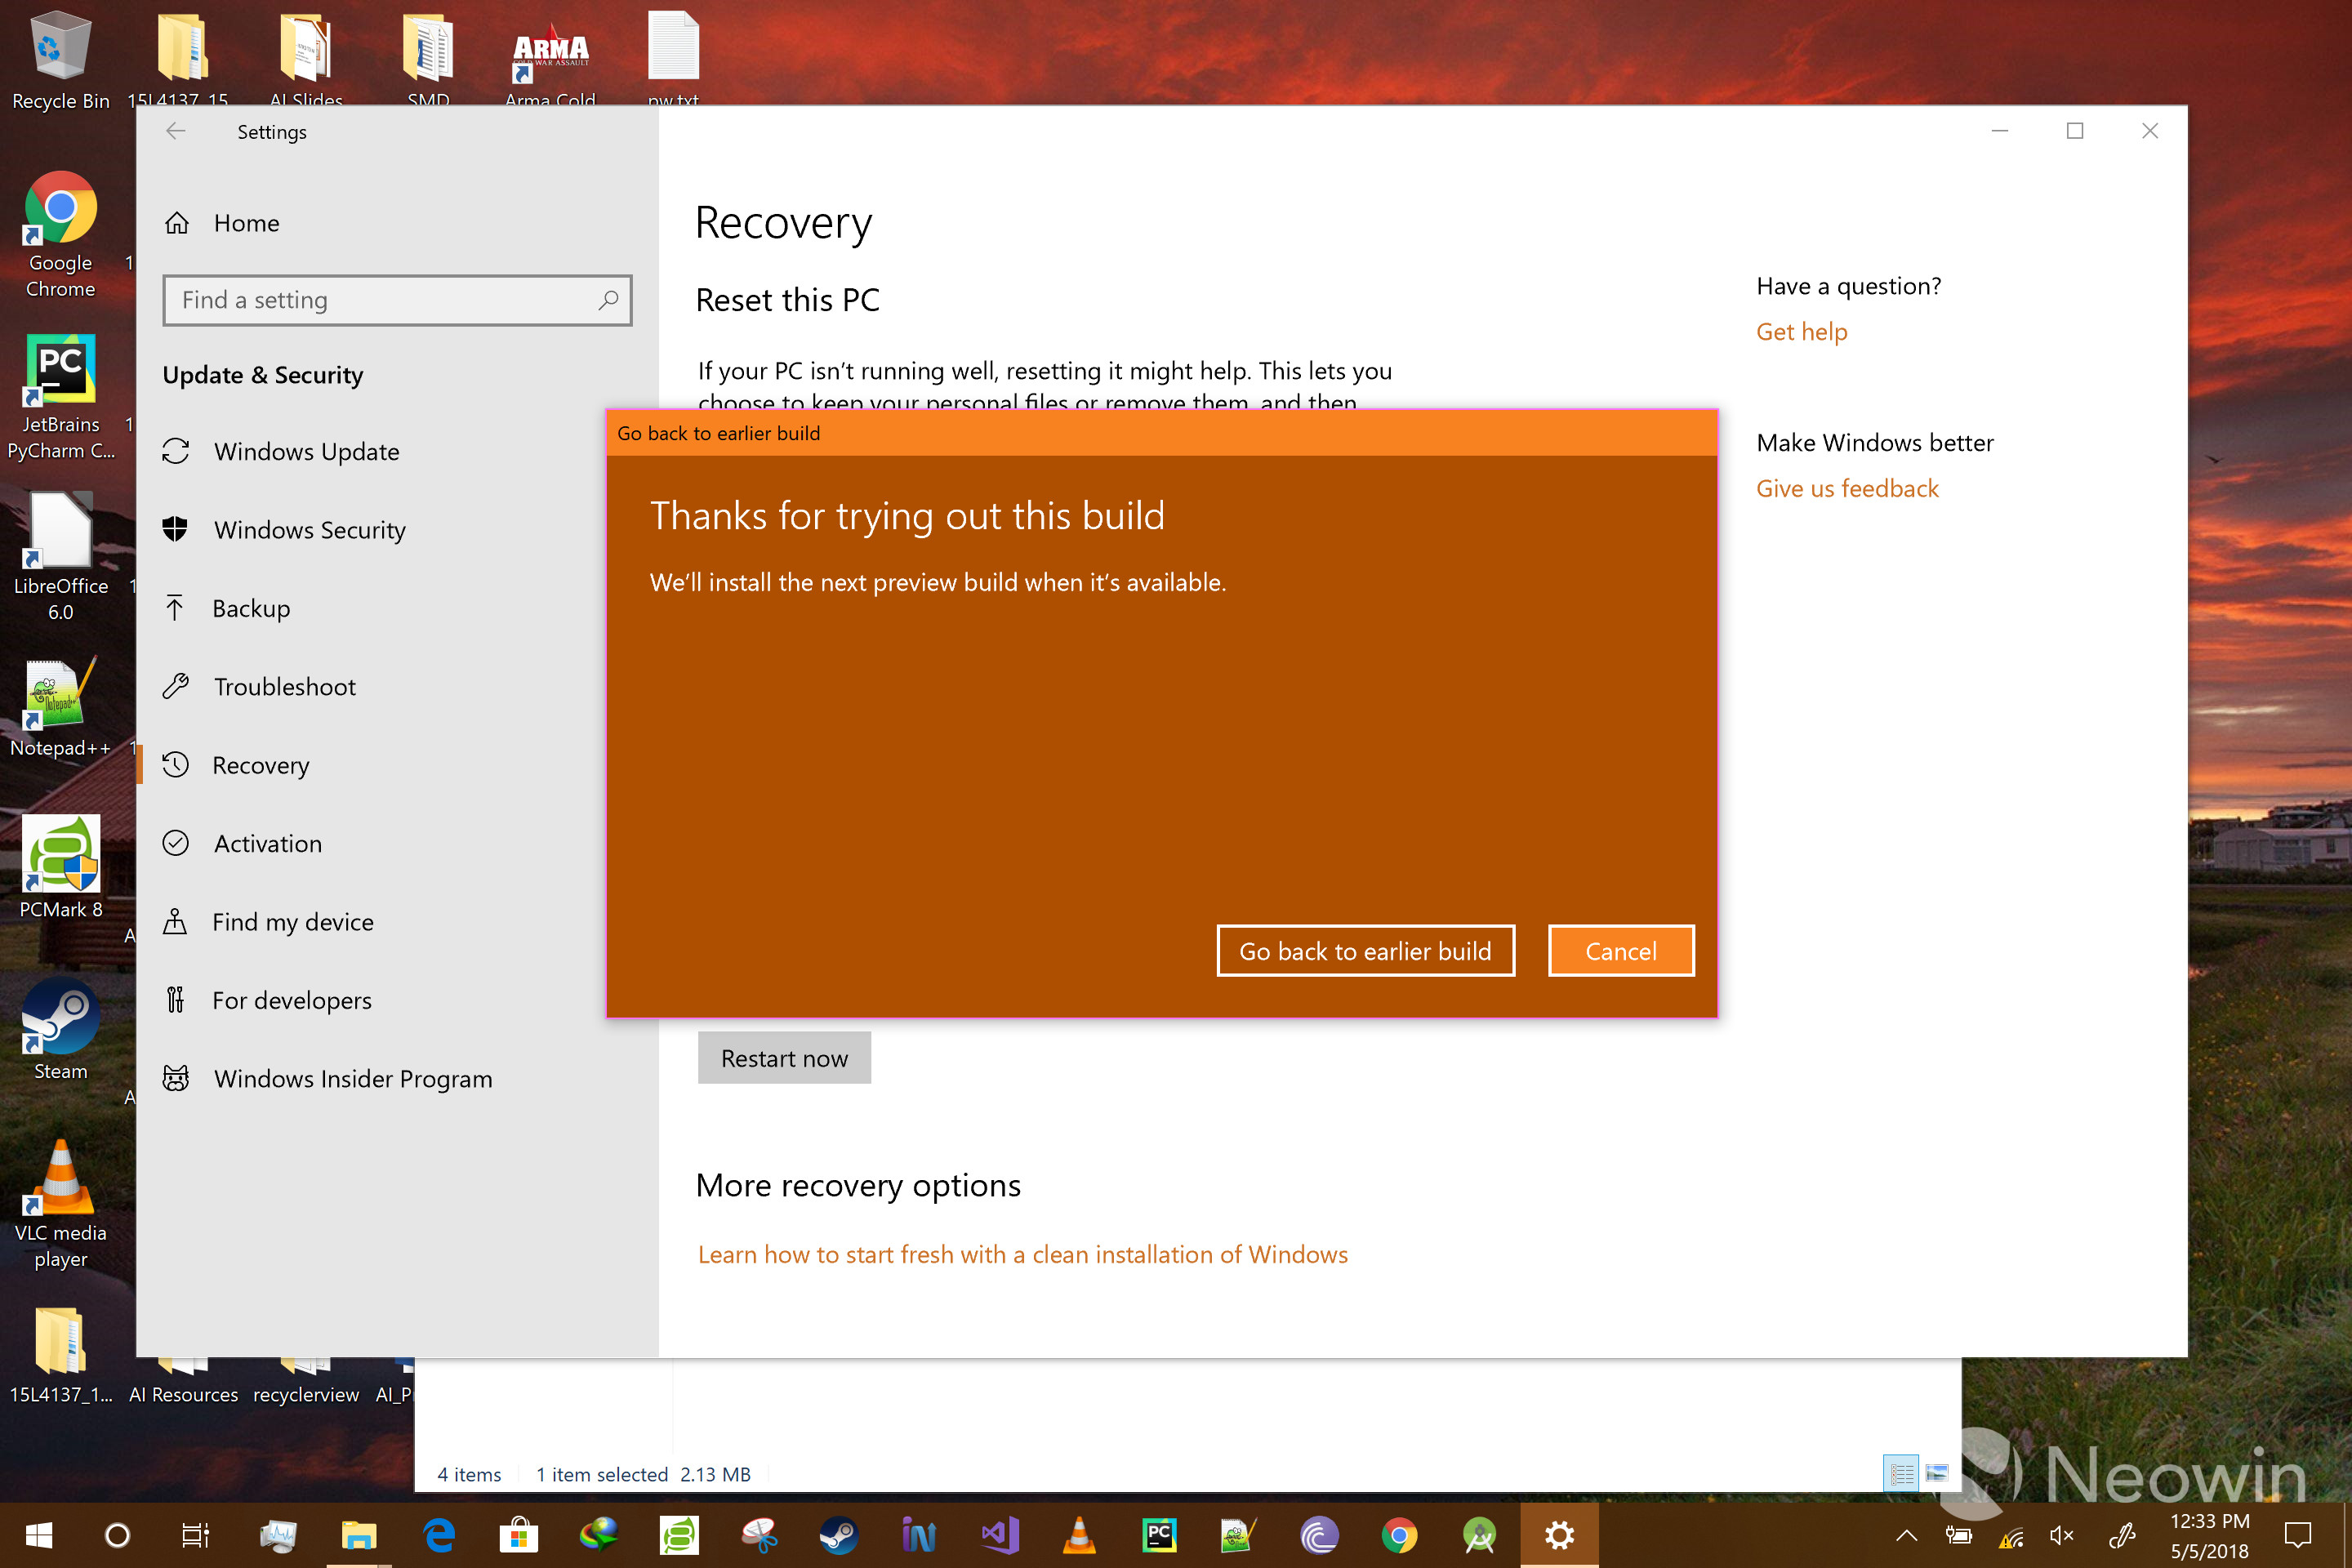 Here's how to roll back the Windows 10 April 2018 Update - Neowin